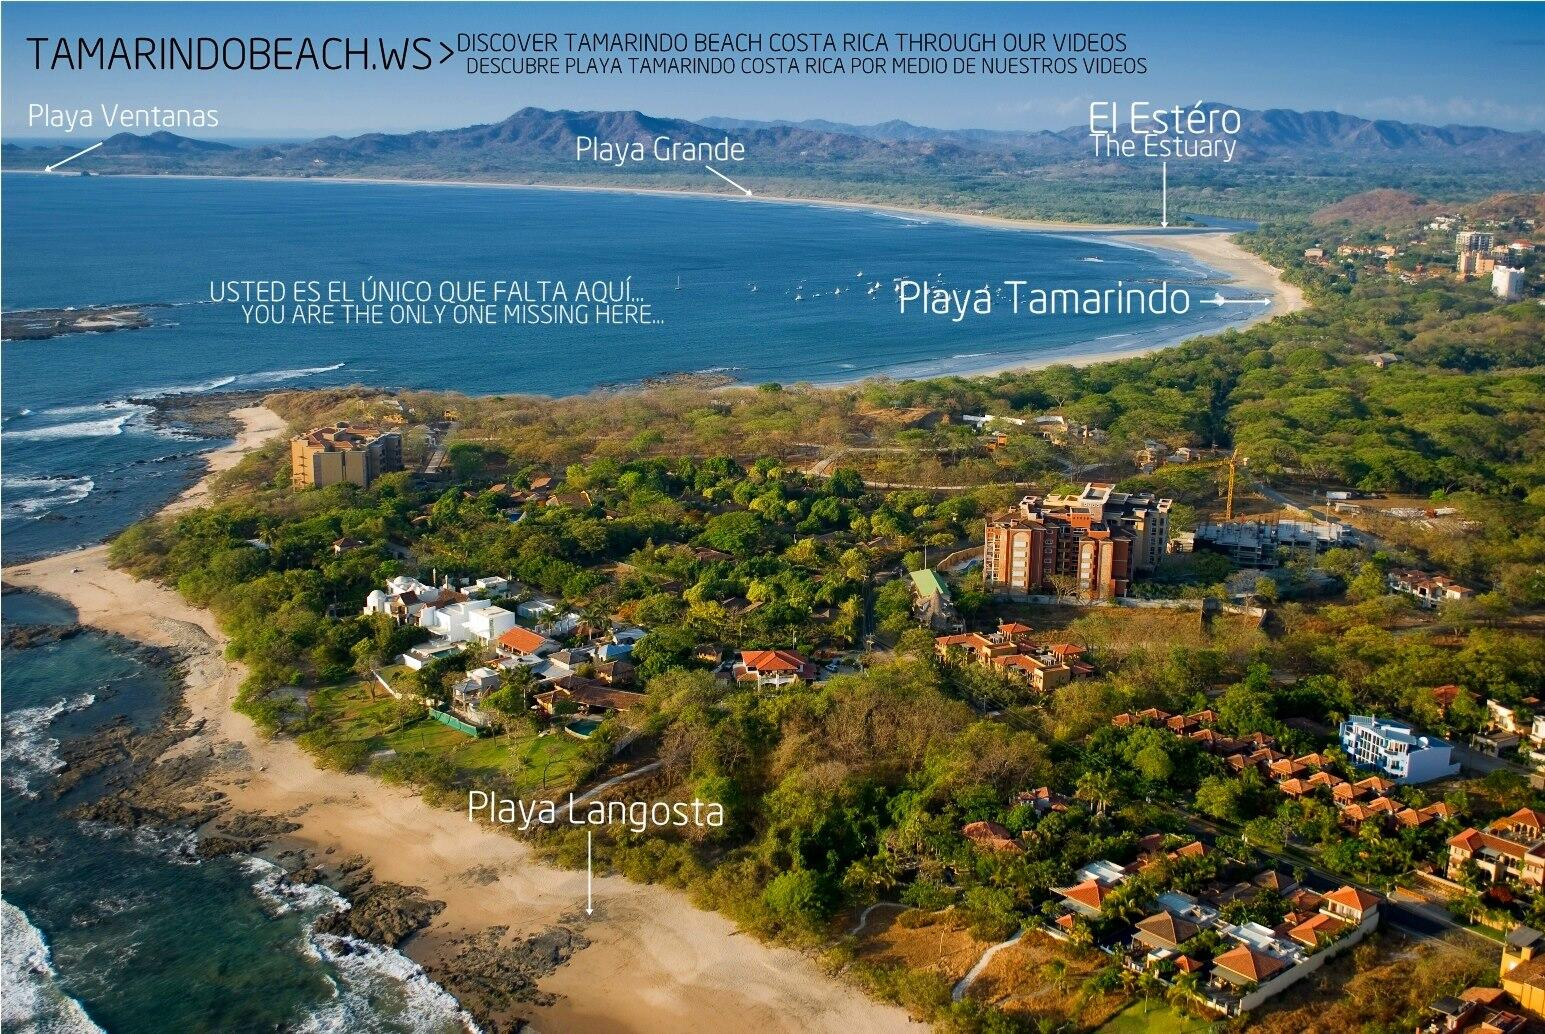 Tamarindo Costa Rica  city photos gallery : ... videos the bea ch of tamarindo costa rica pic twitter com yytnqfp4uc